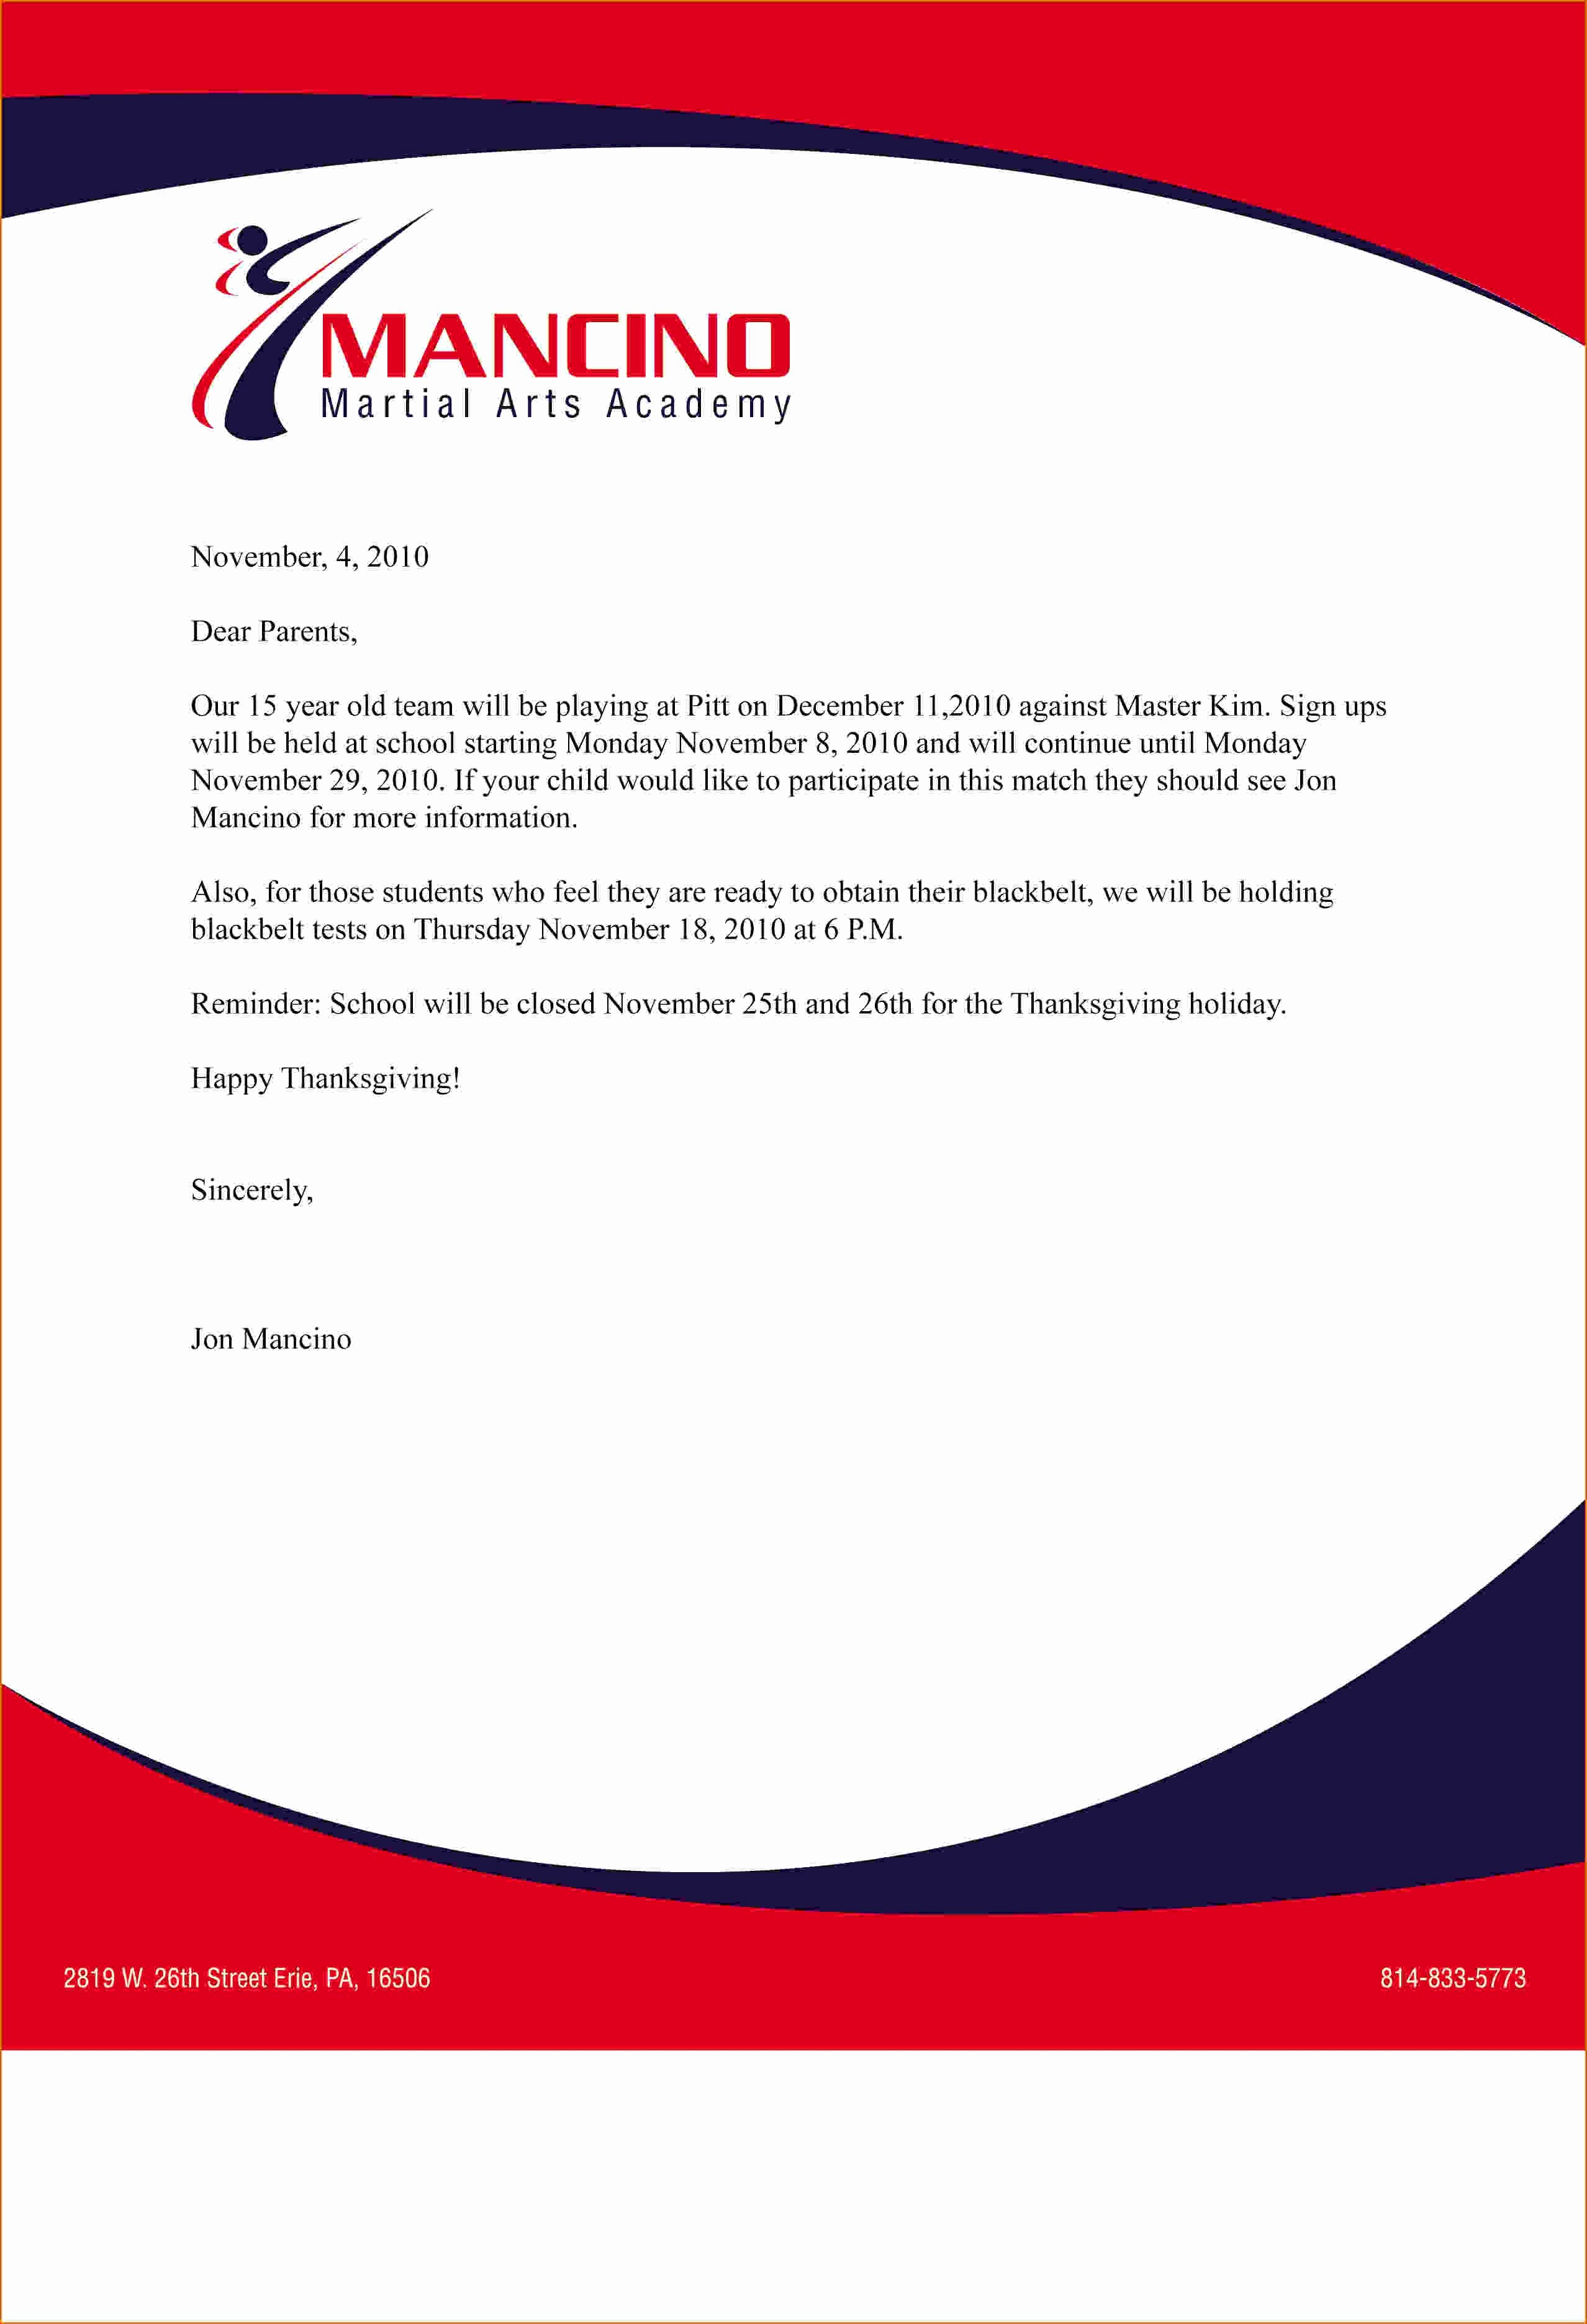 Sample Business Letter On Letterhead Luxury Pin by Amirah Dayana On Letterhead